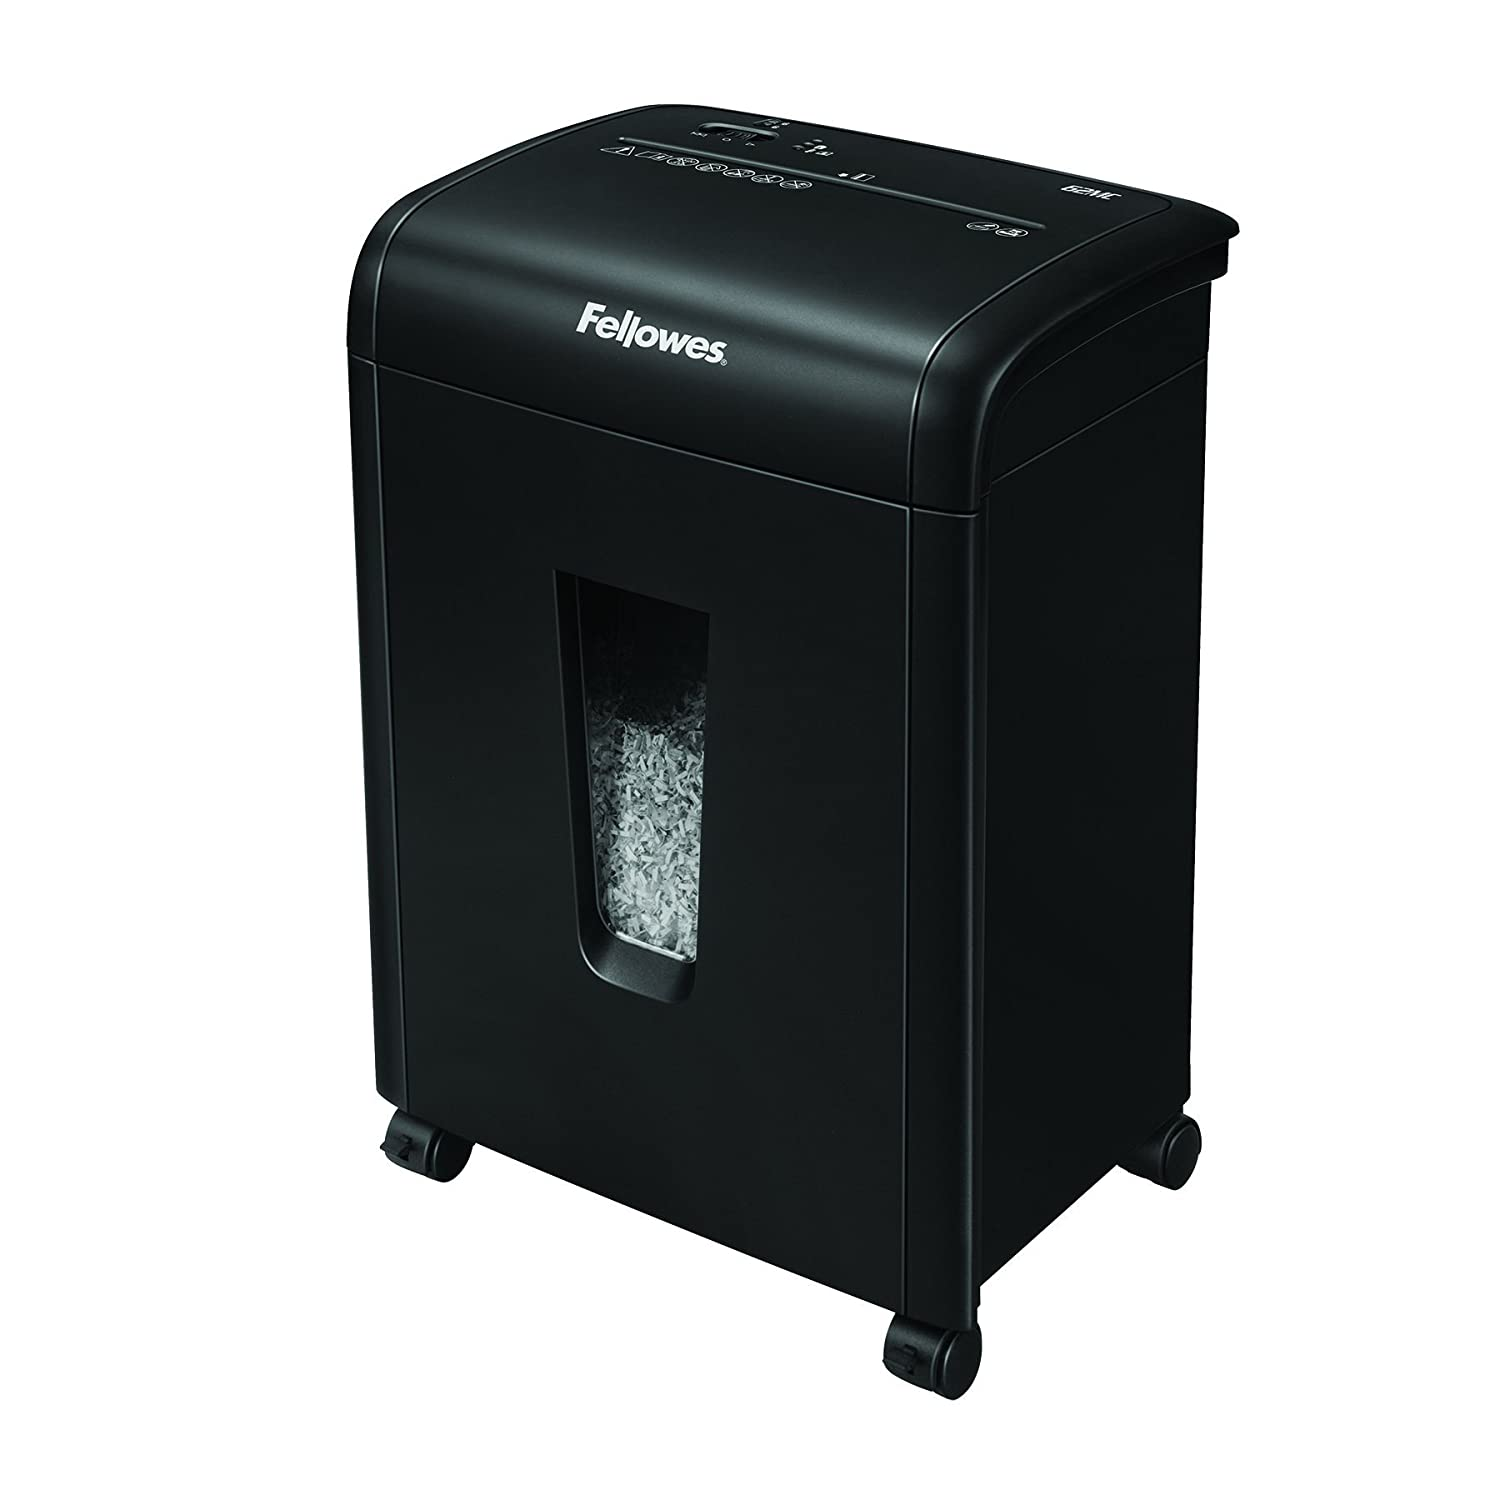 Fellowes 62MC 10-Sheet Micro-Cut Home and Office Paper Shredder with Safety Lock for Added Protection (4685101)